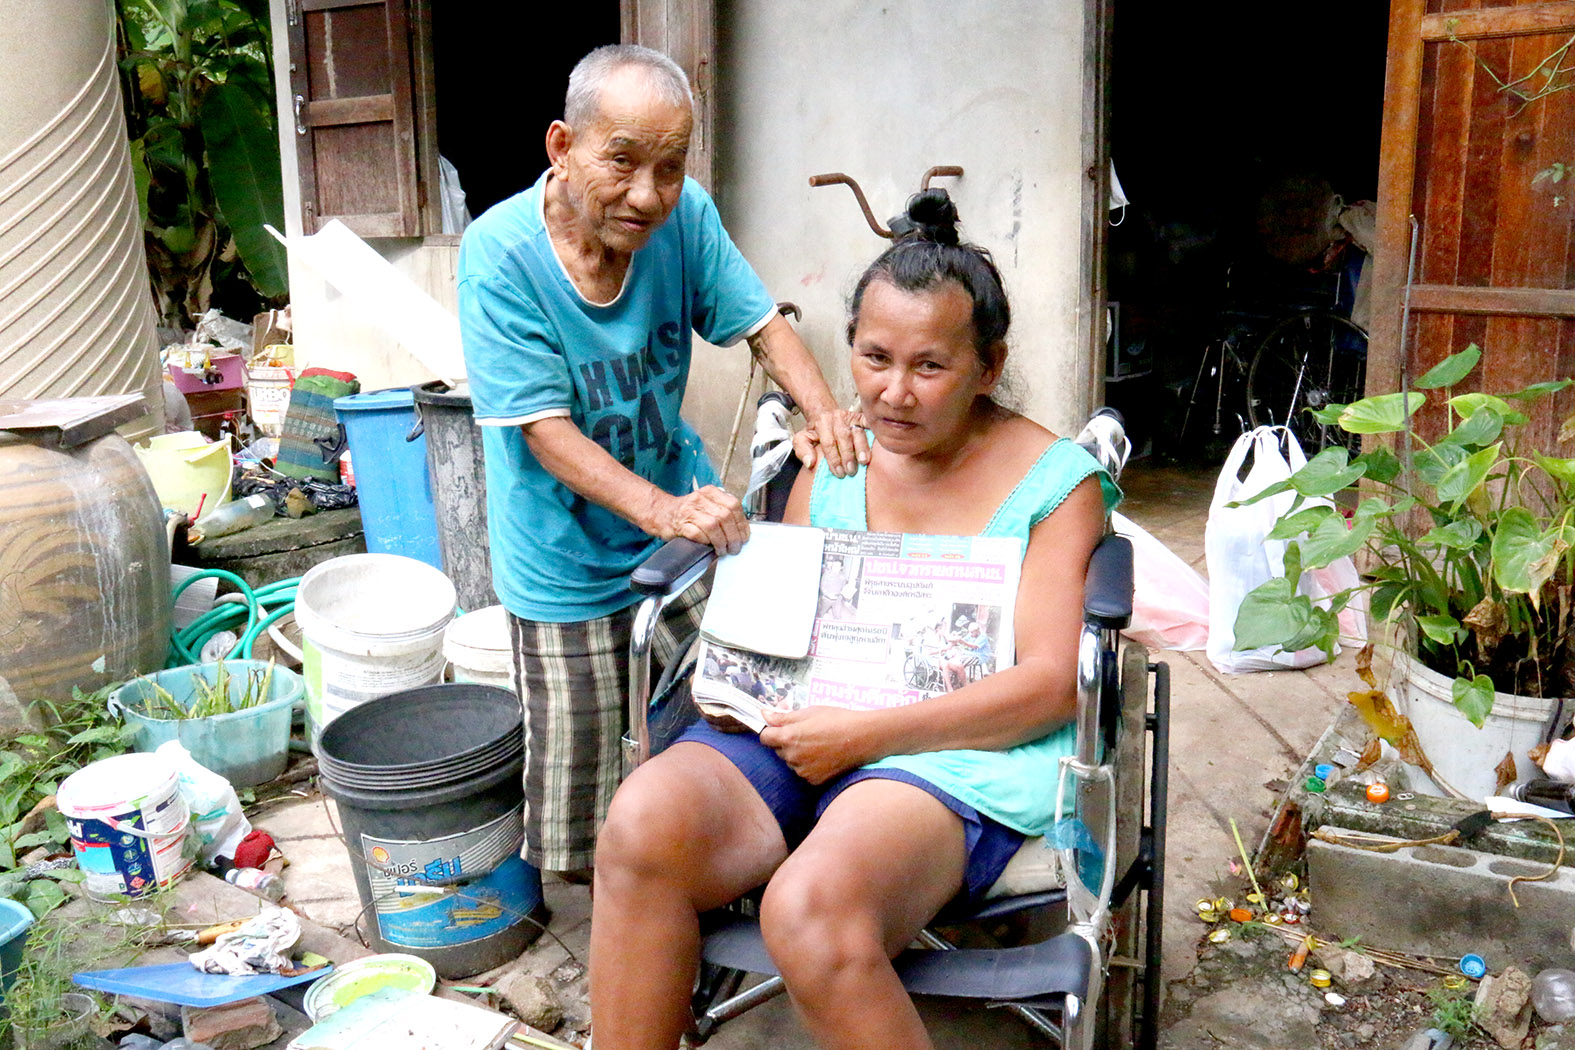 Klissana Tiemsuwan and his disabled wife Sirirat were dealt another blow when their daughter stole the charitable donations neighbors contributed.